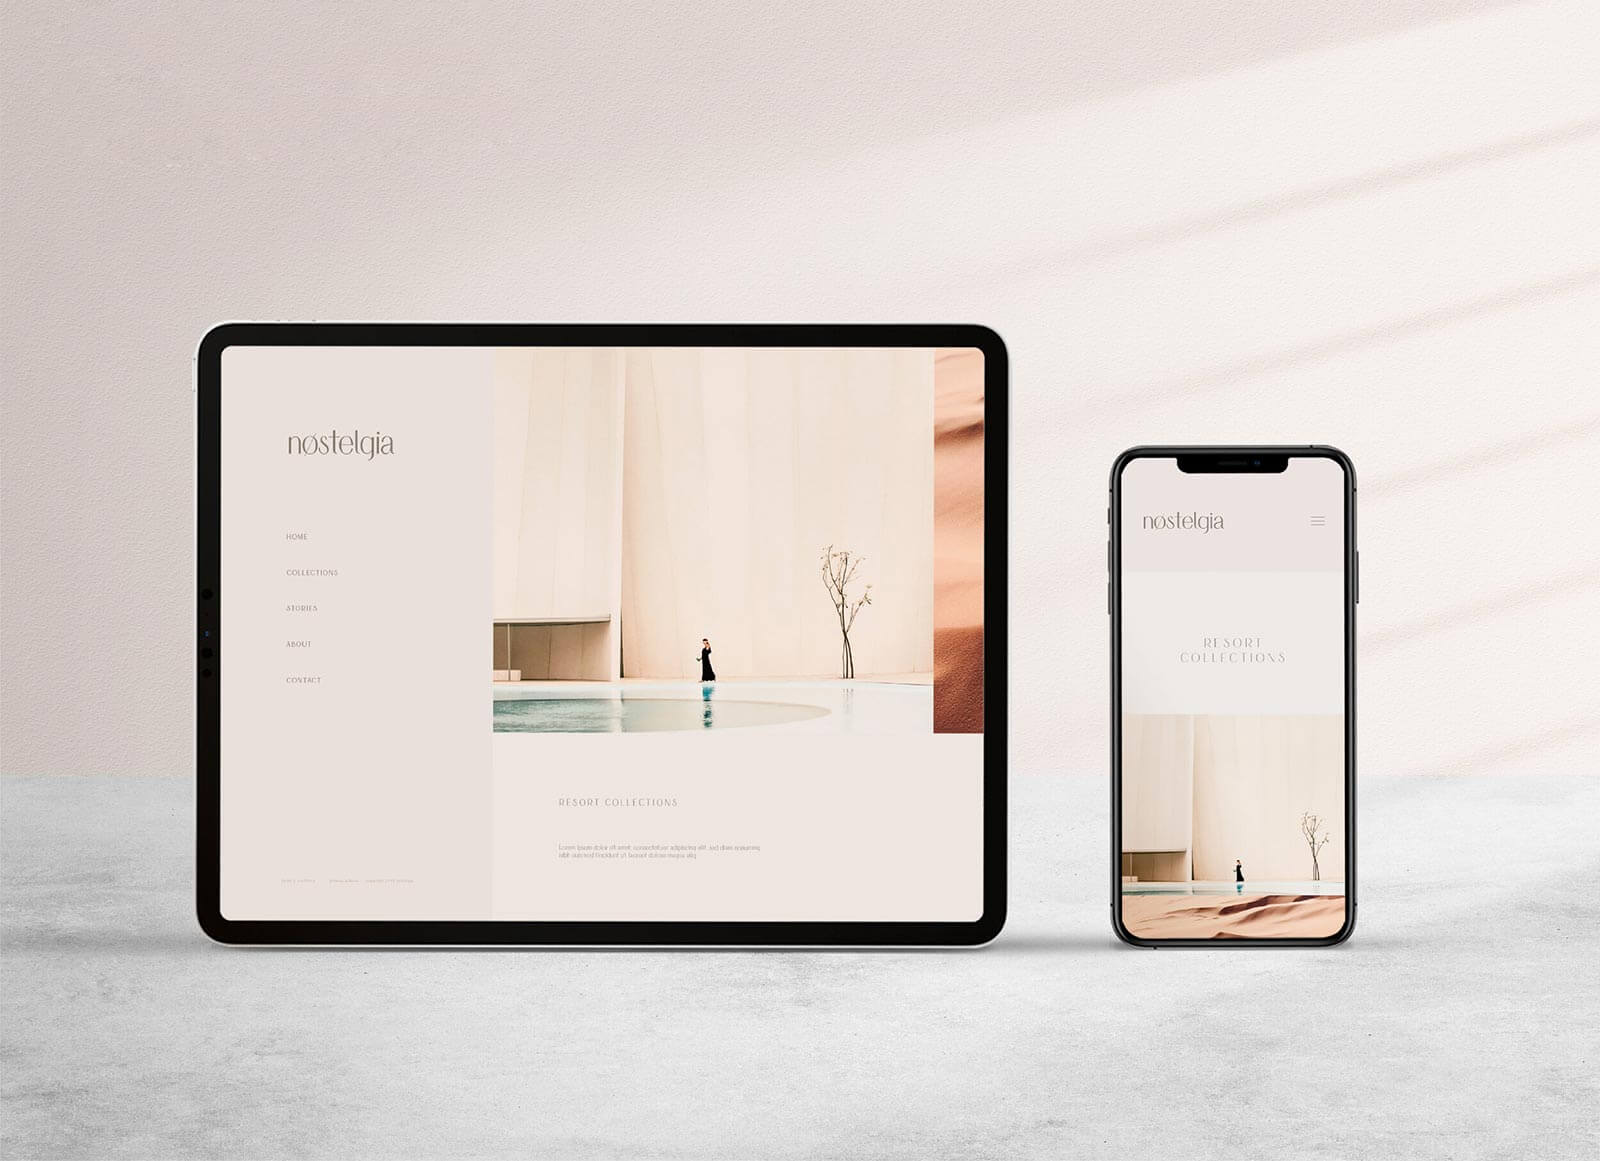 Free Ipad Pro Iphone X App Display Mockup Psd Good Mockups